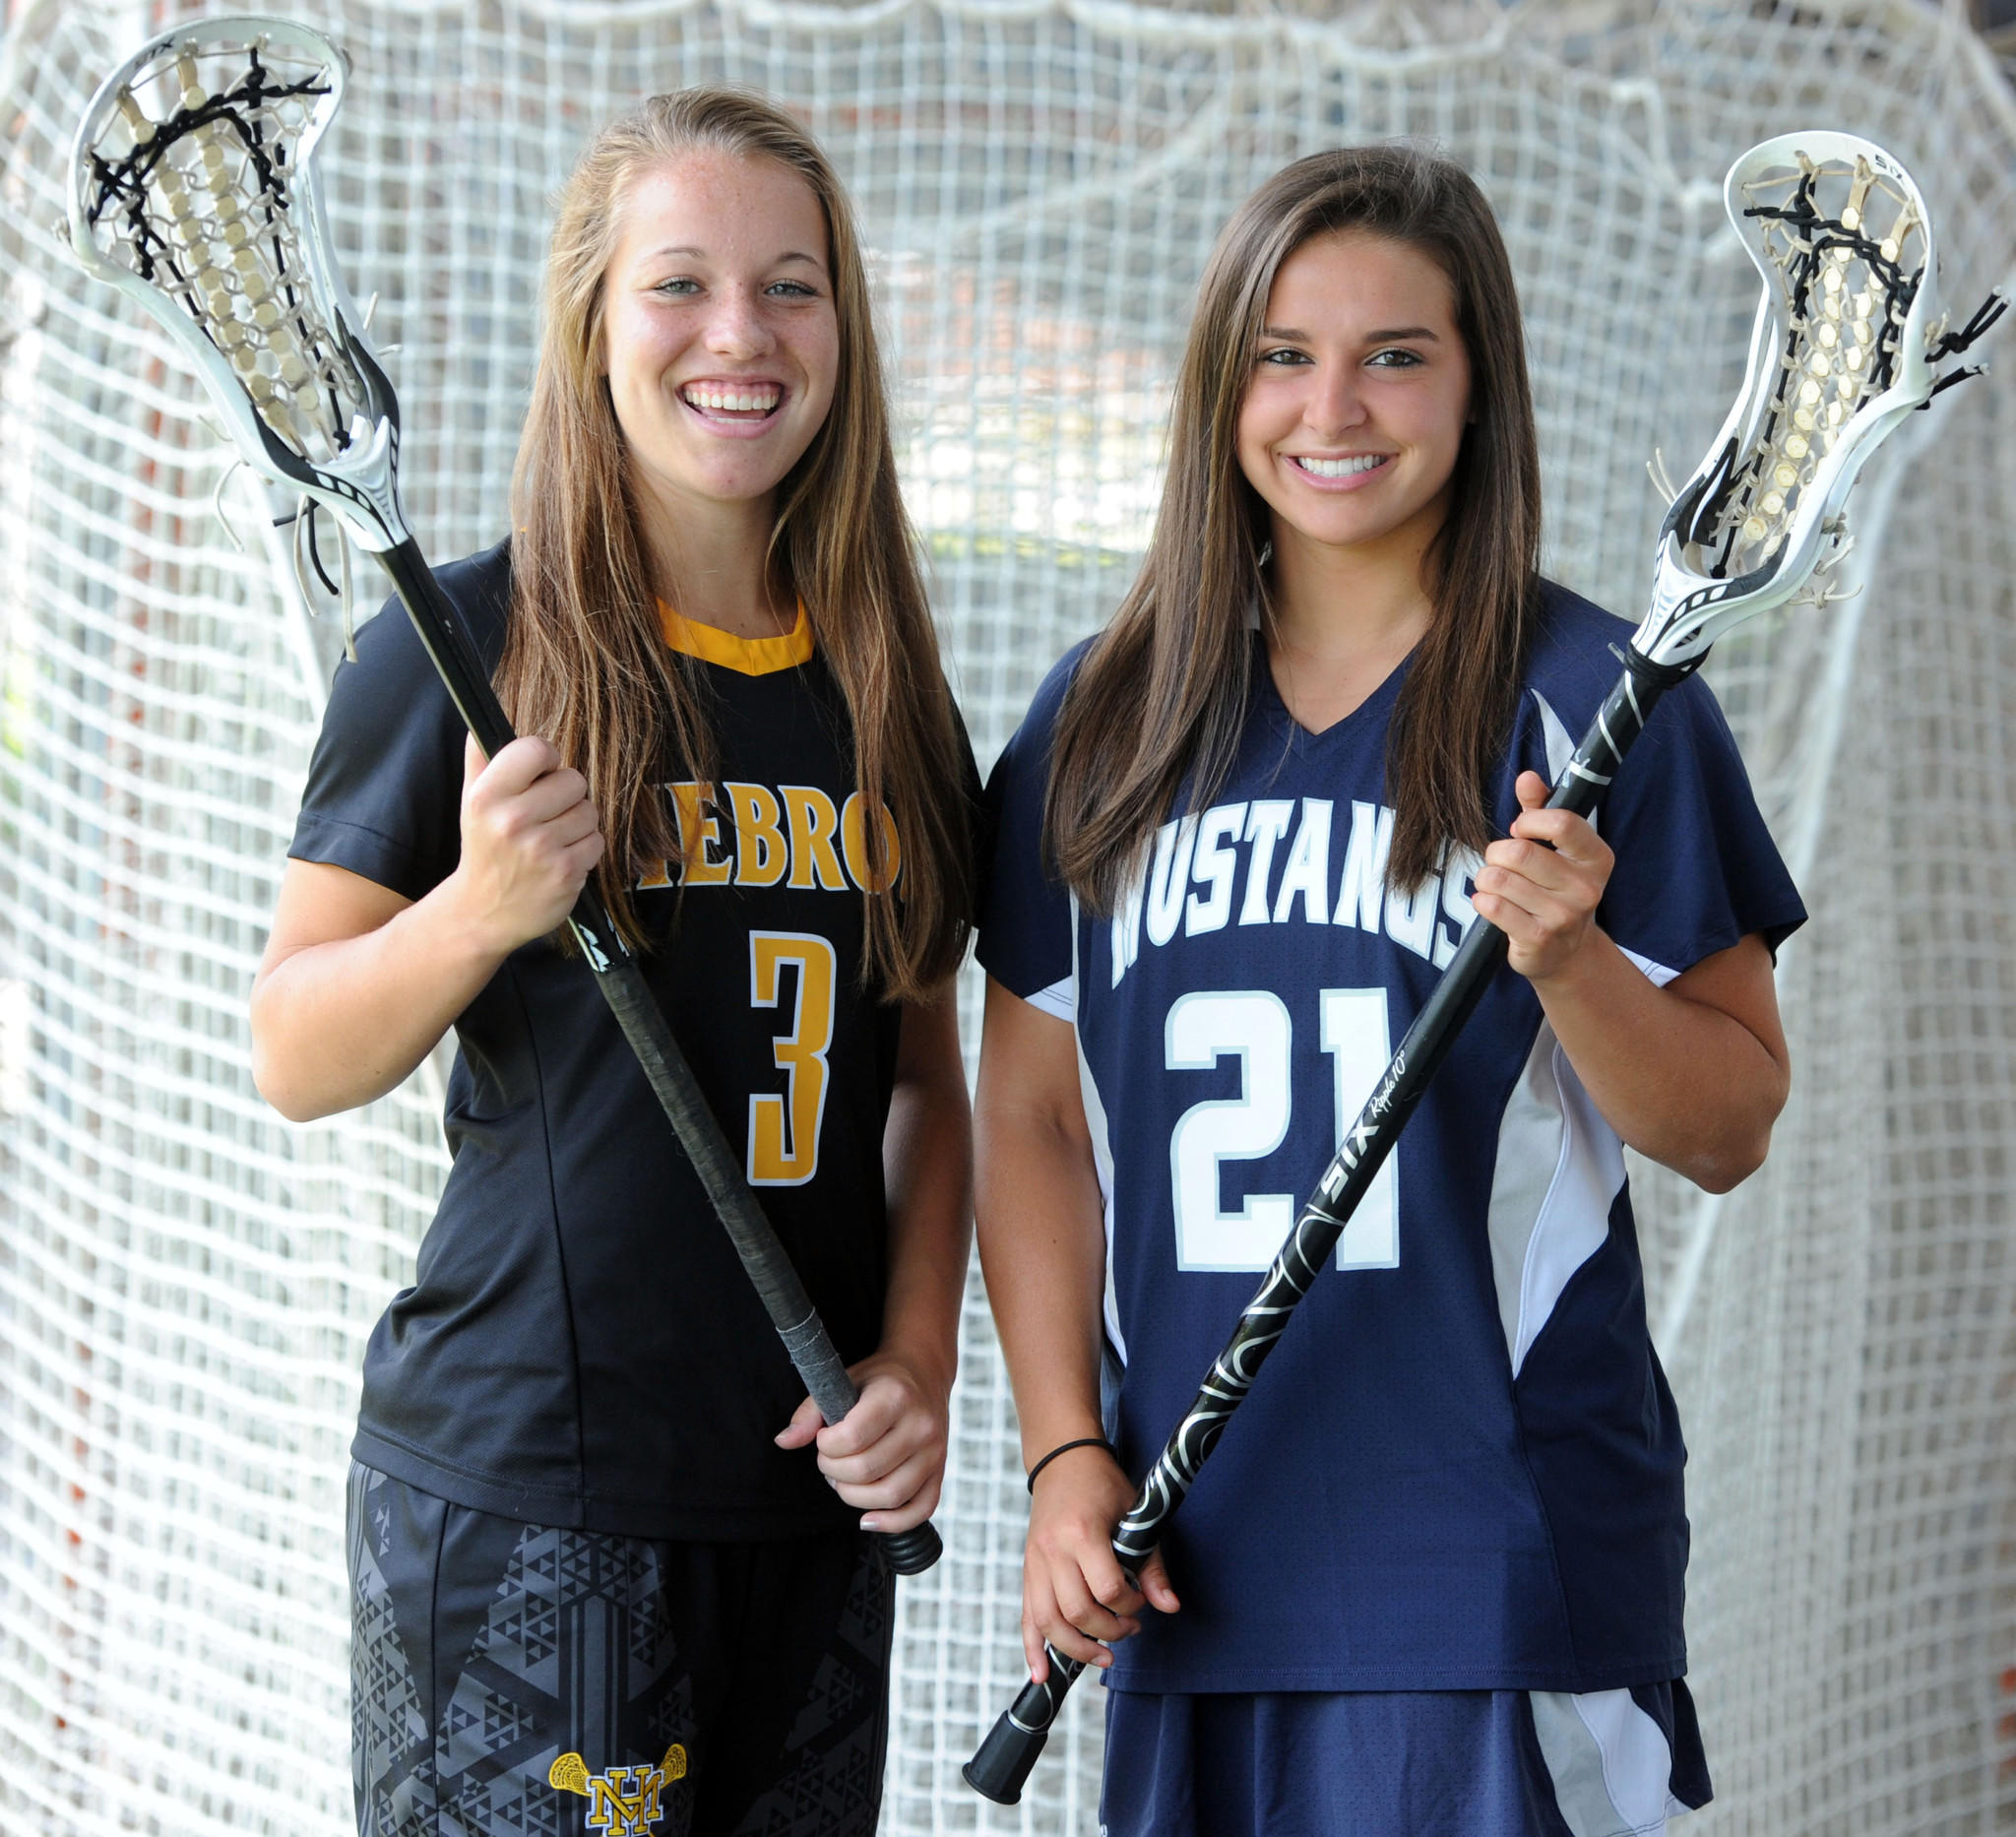 Left to right, Mount Hebron defender Tianna Wallpher and Marriotts Ridge midfielder Taylor Hensh, both All-Metro players who went head-to-head for four years in one of the area's fiercest girls lacrosse rivalries, will now be teammates in the Under Armour All-America Lacrosse Classic.